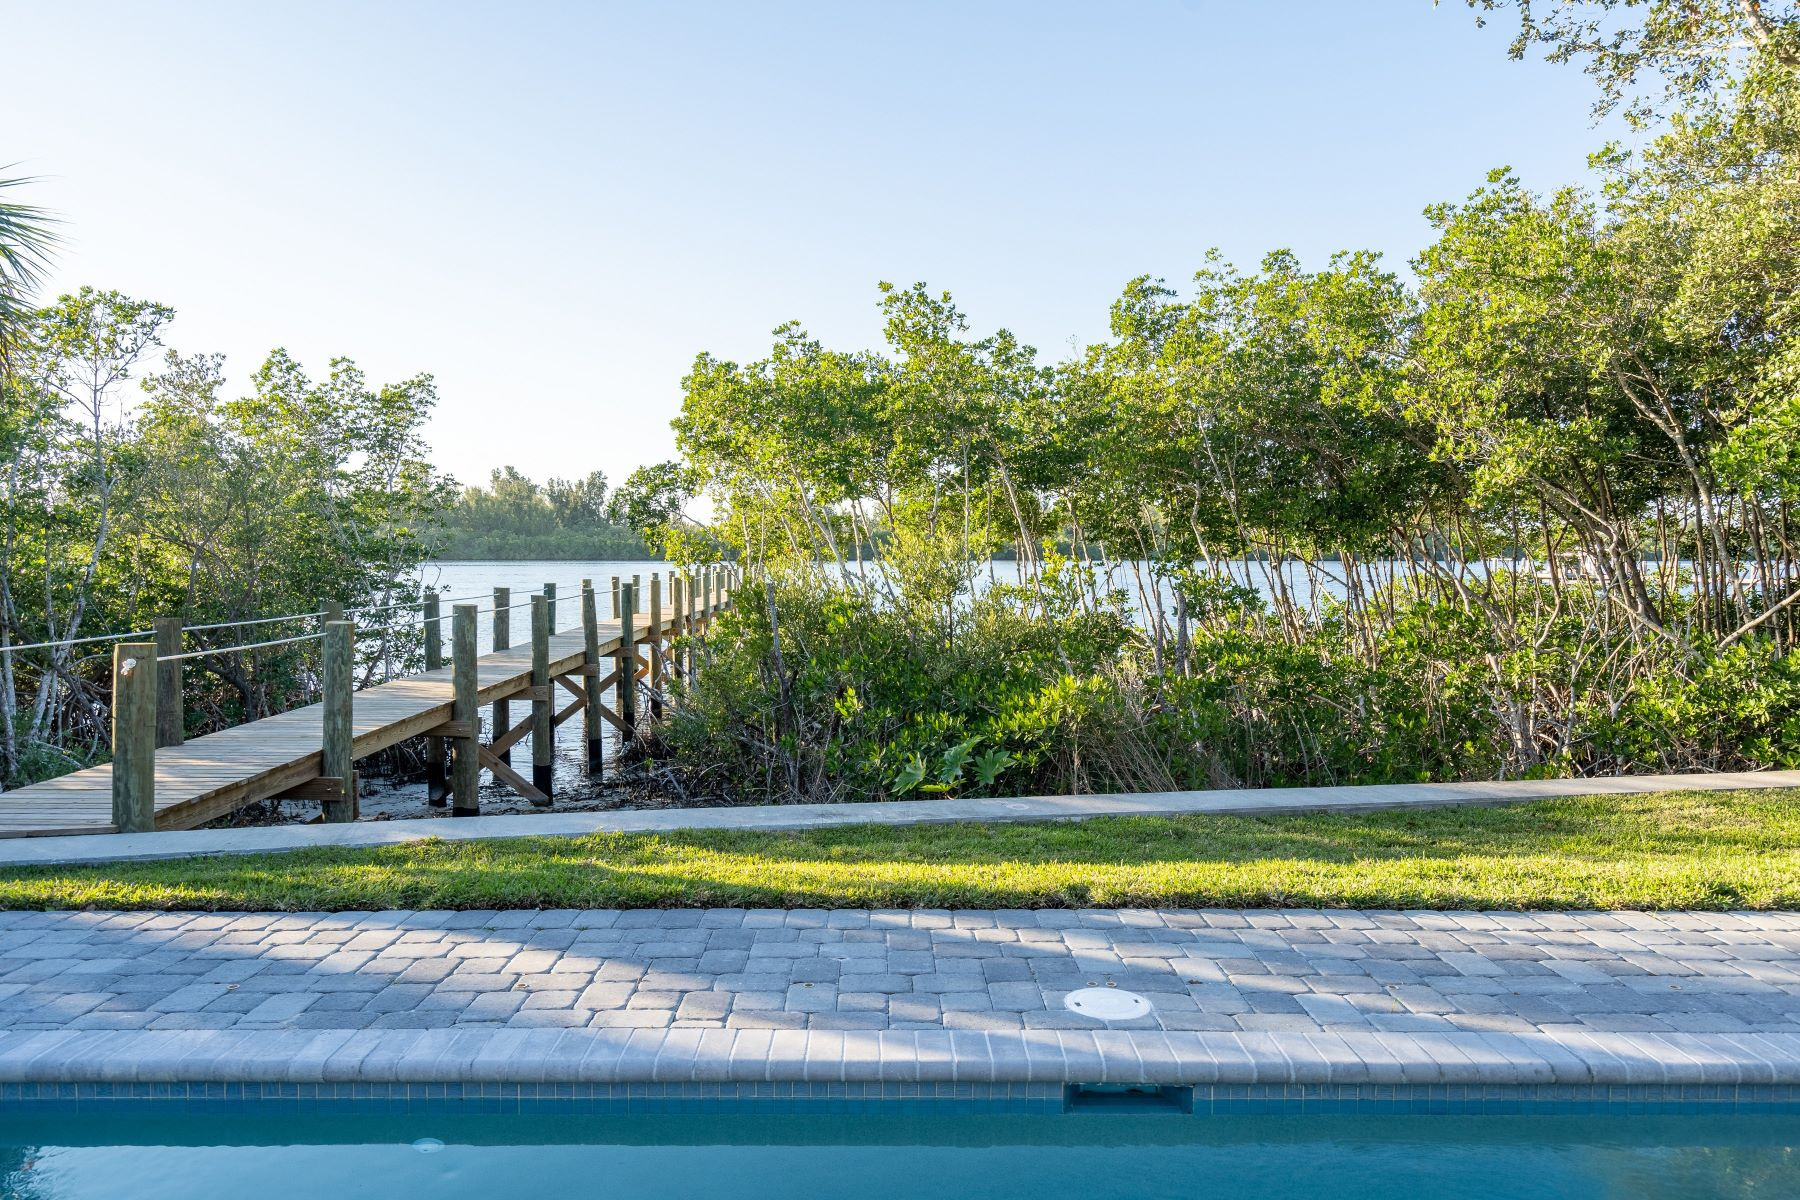 Additional photo for property listing at 1409 Old Winter Beach Road 印度畔, 佛罗里达州 32963 美国